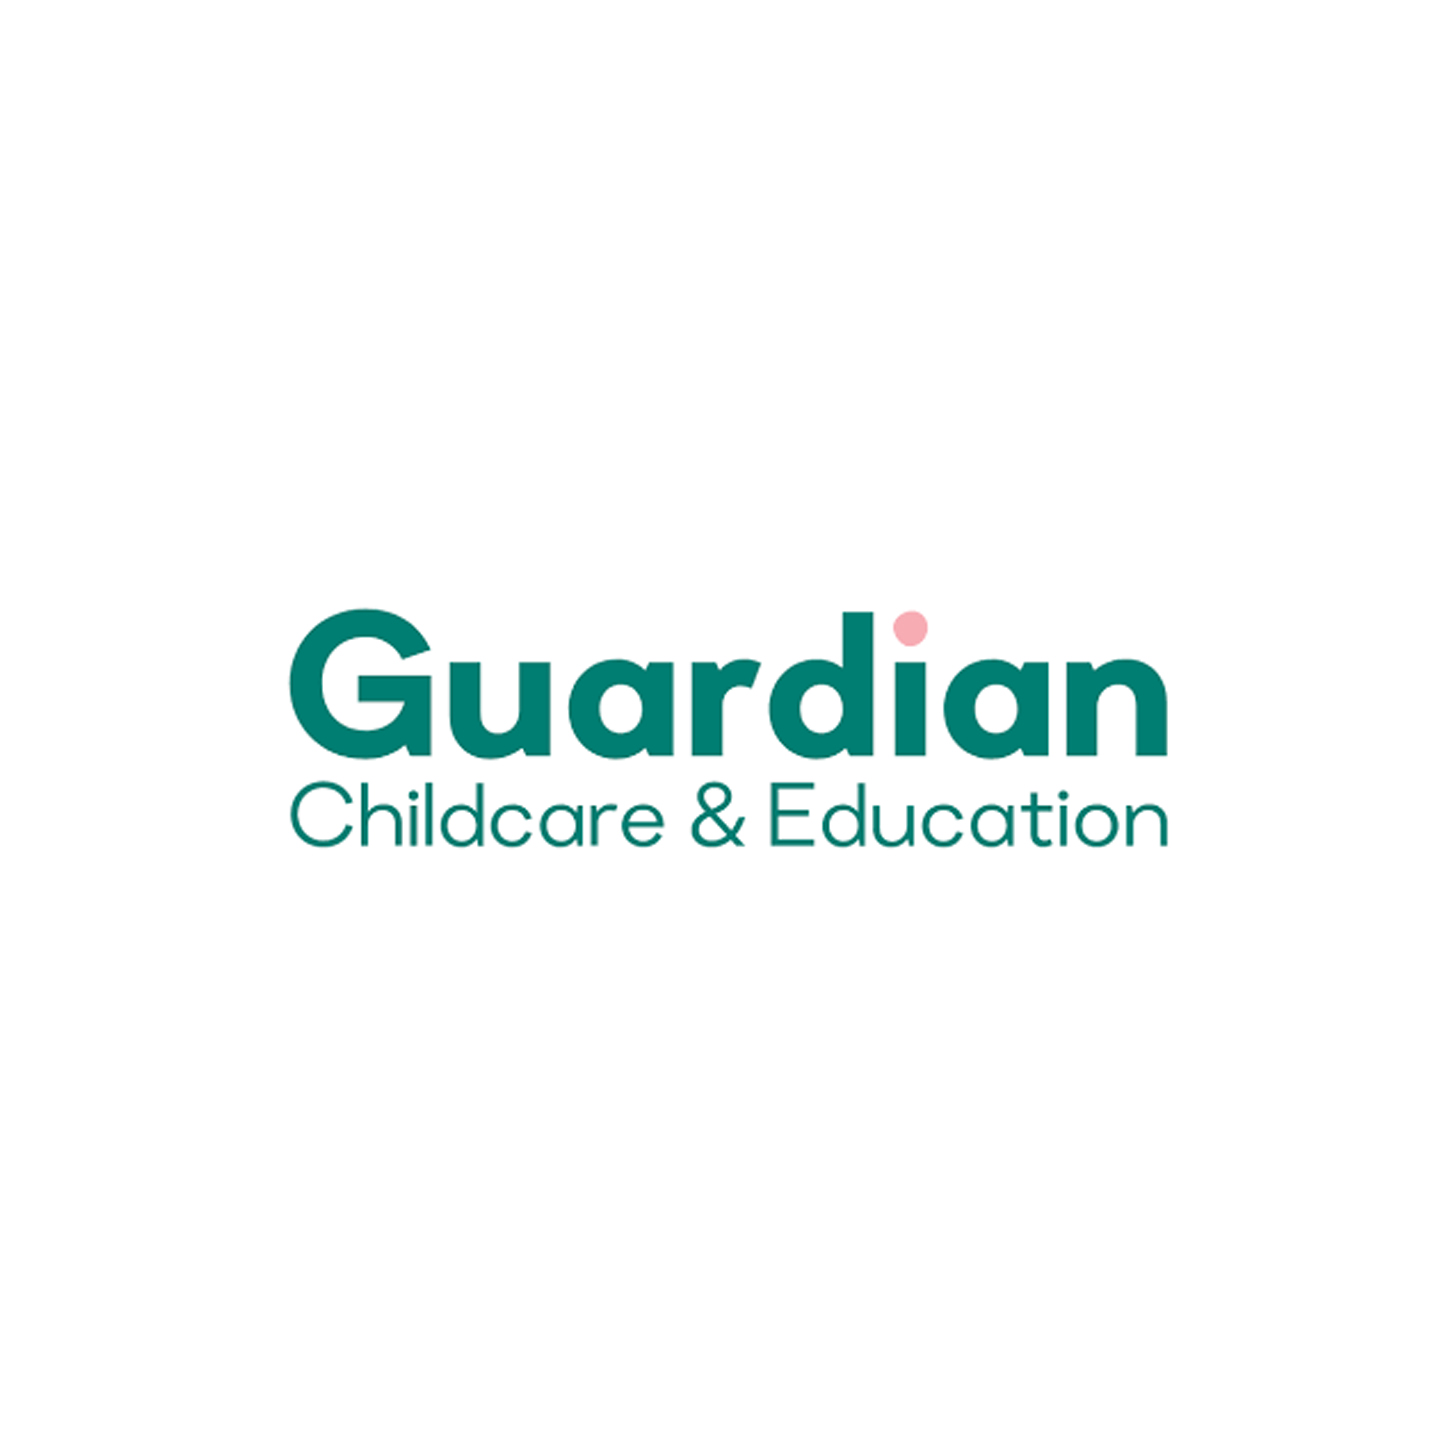 GUARDIAN CHILDCARE